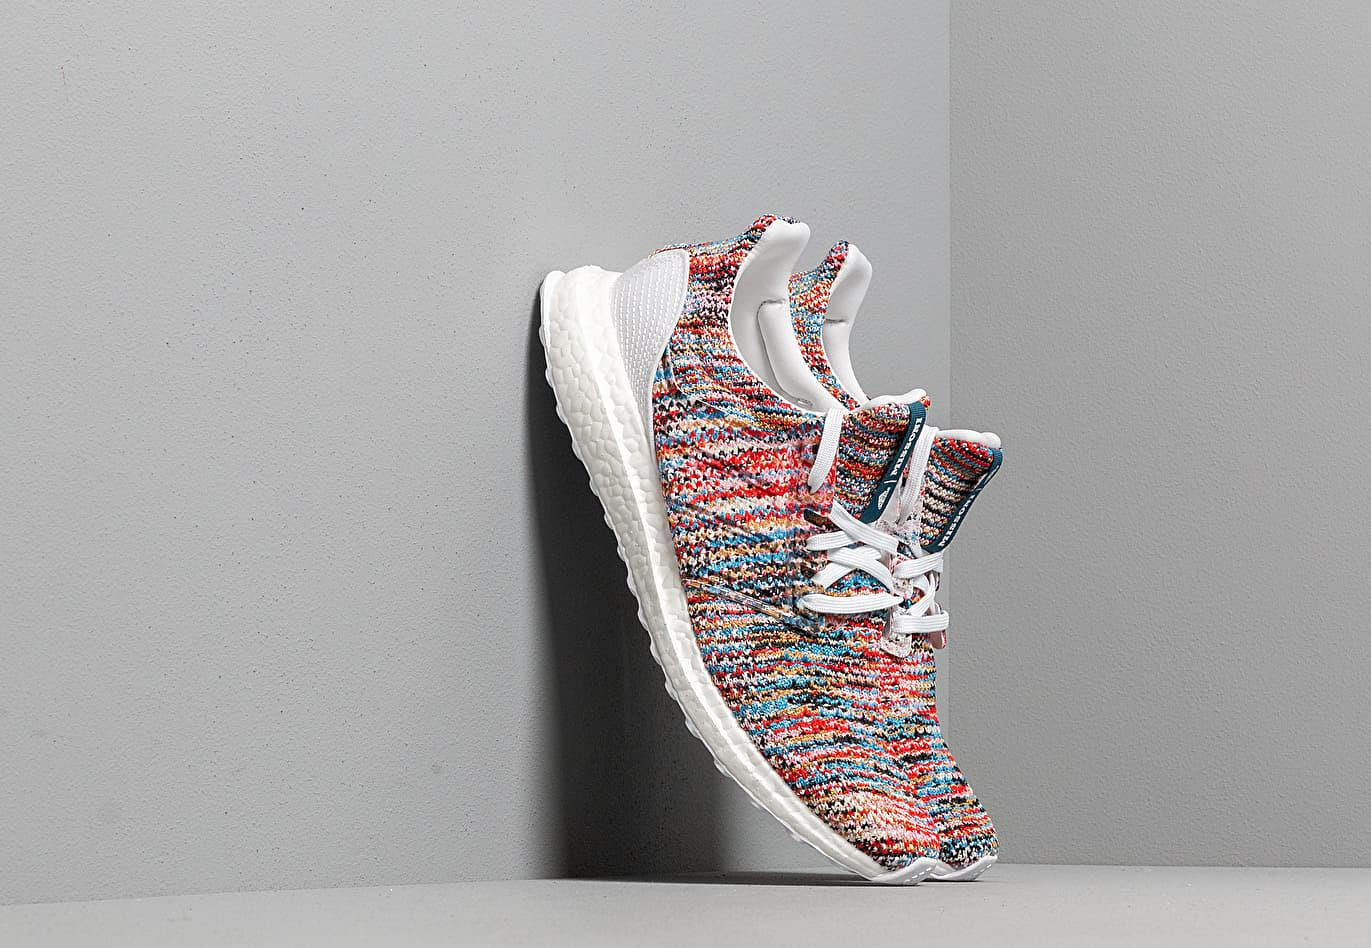 ae1d997ece2af adidas Originals. Women s Adidas X Missoni Ultraboost Clima Ftwr White  Shock  Cyan  Active Red